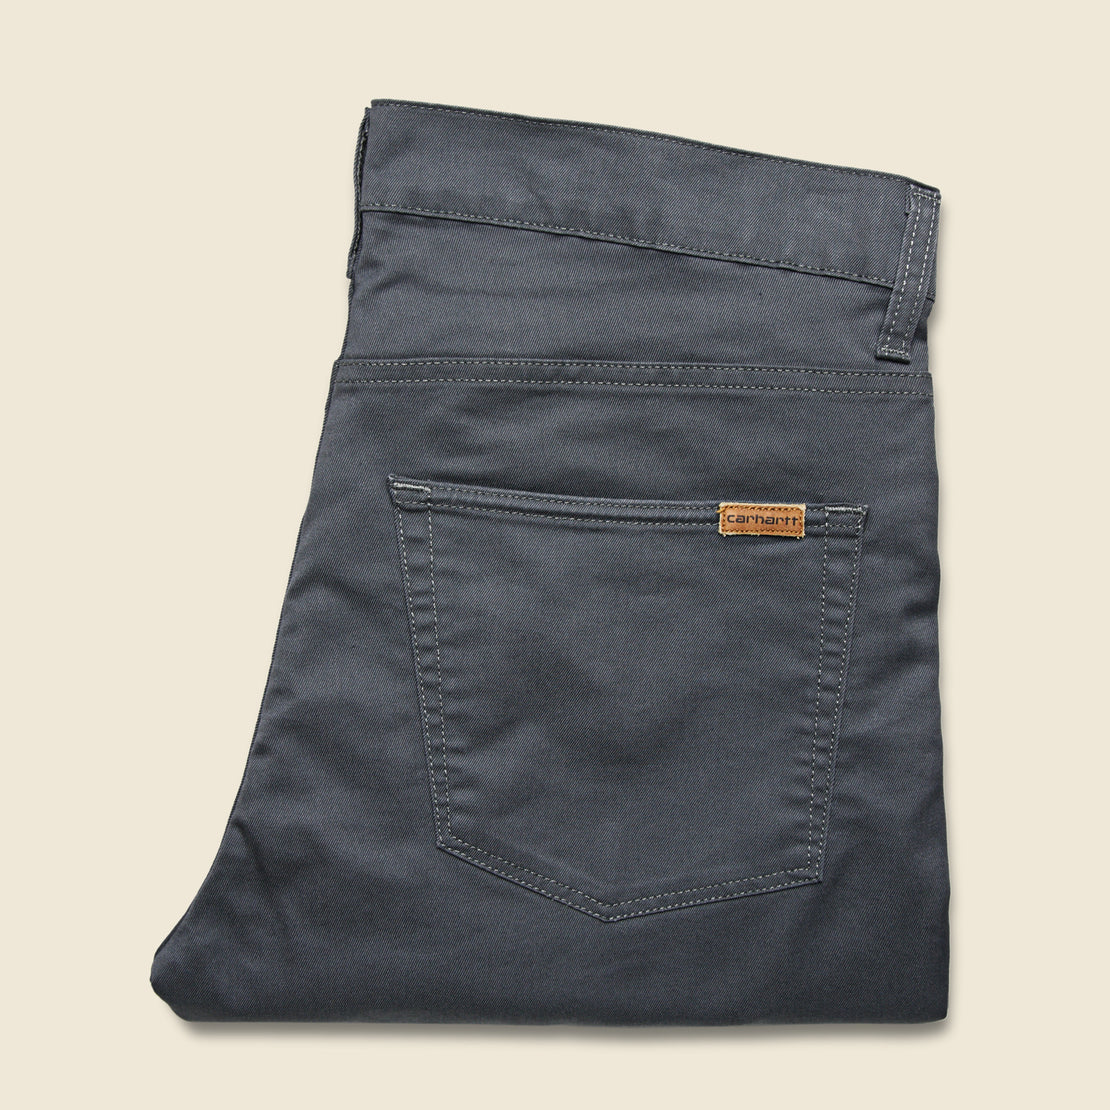 Vicious Pant - Blacksmith - Carhartt WIP - STAG Provisions - Pants - Twill